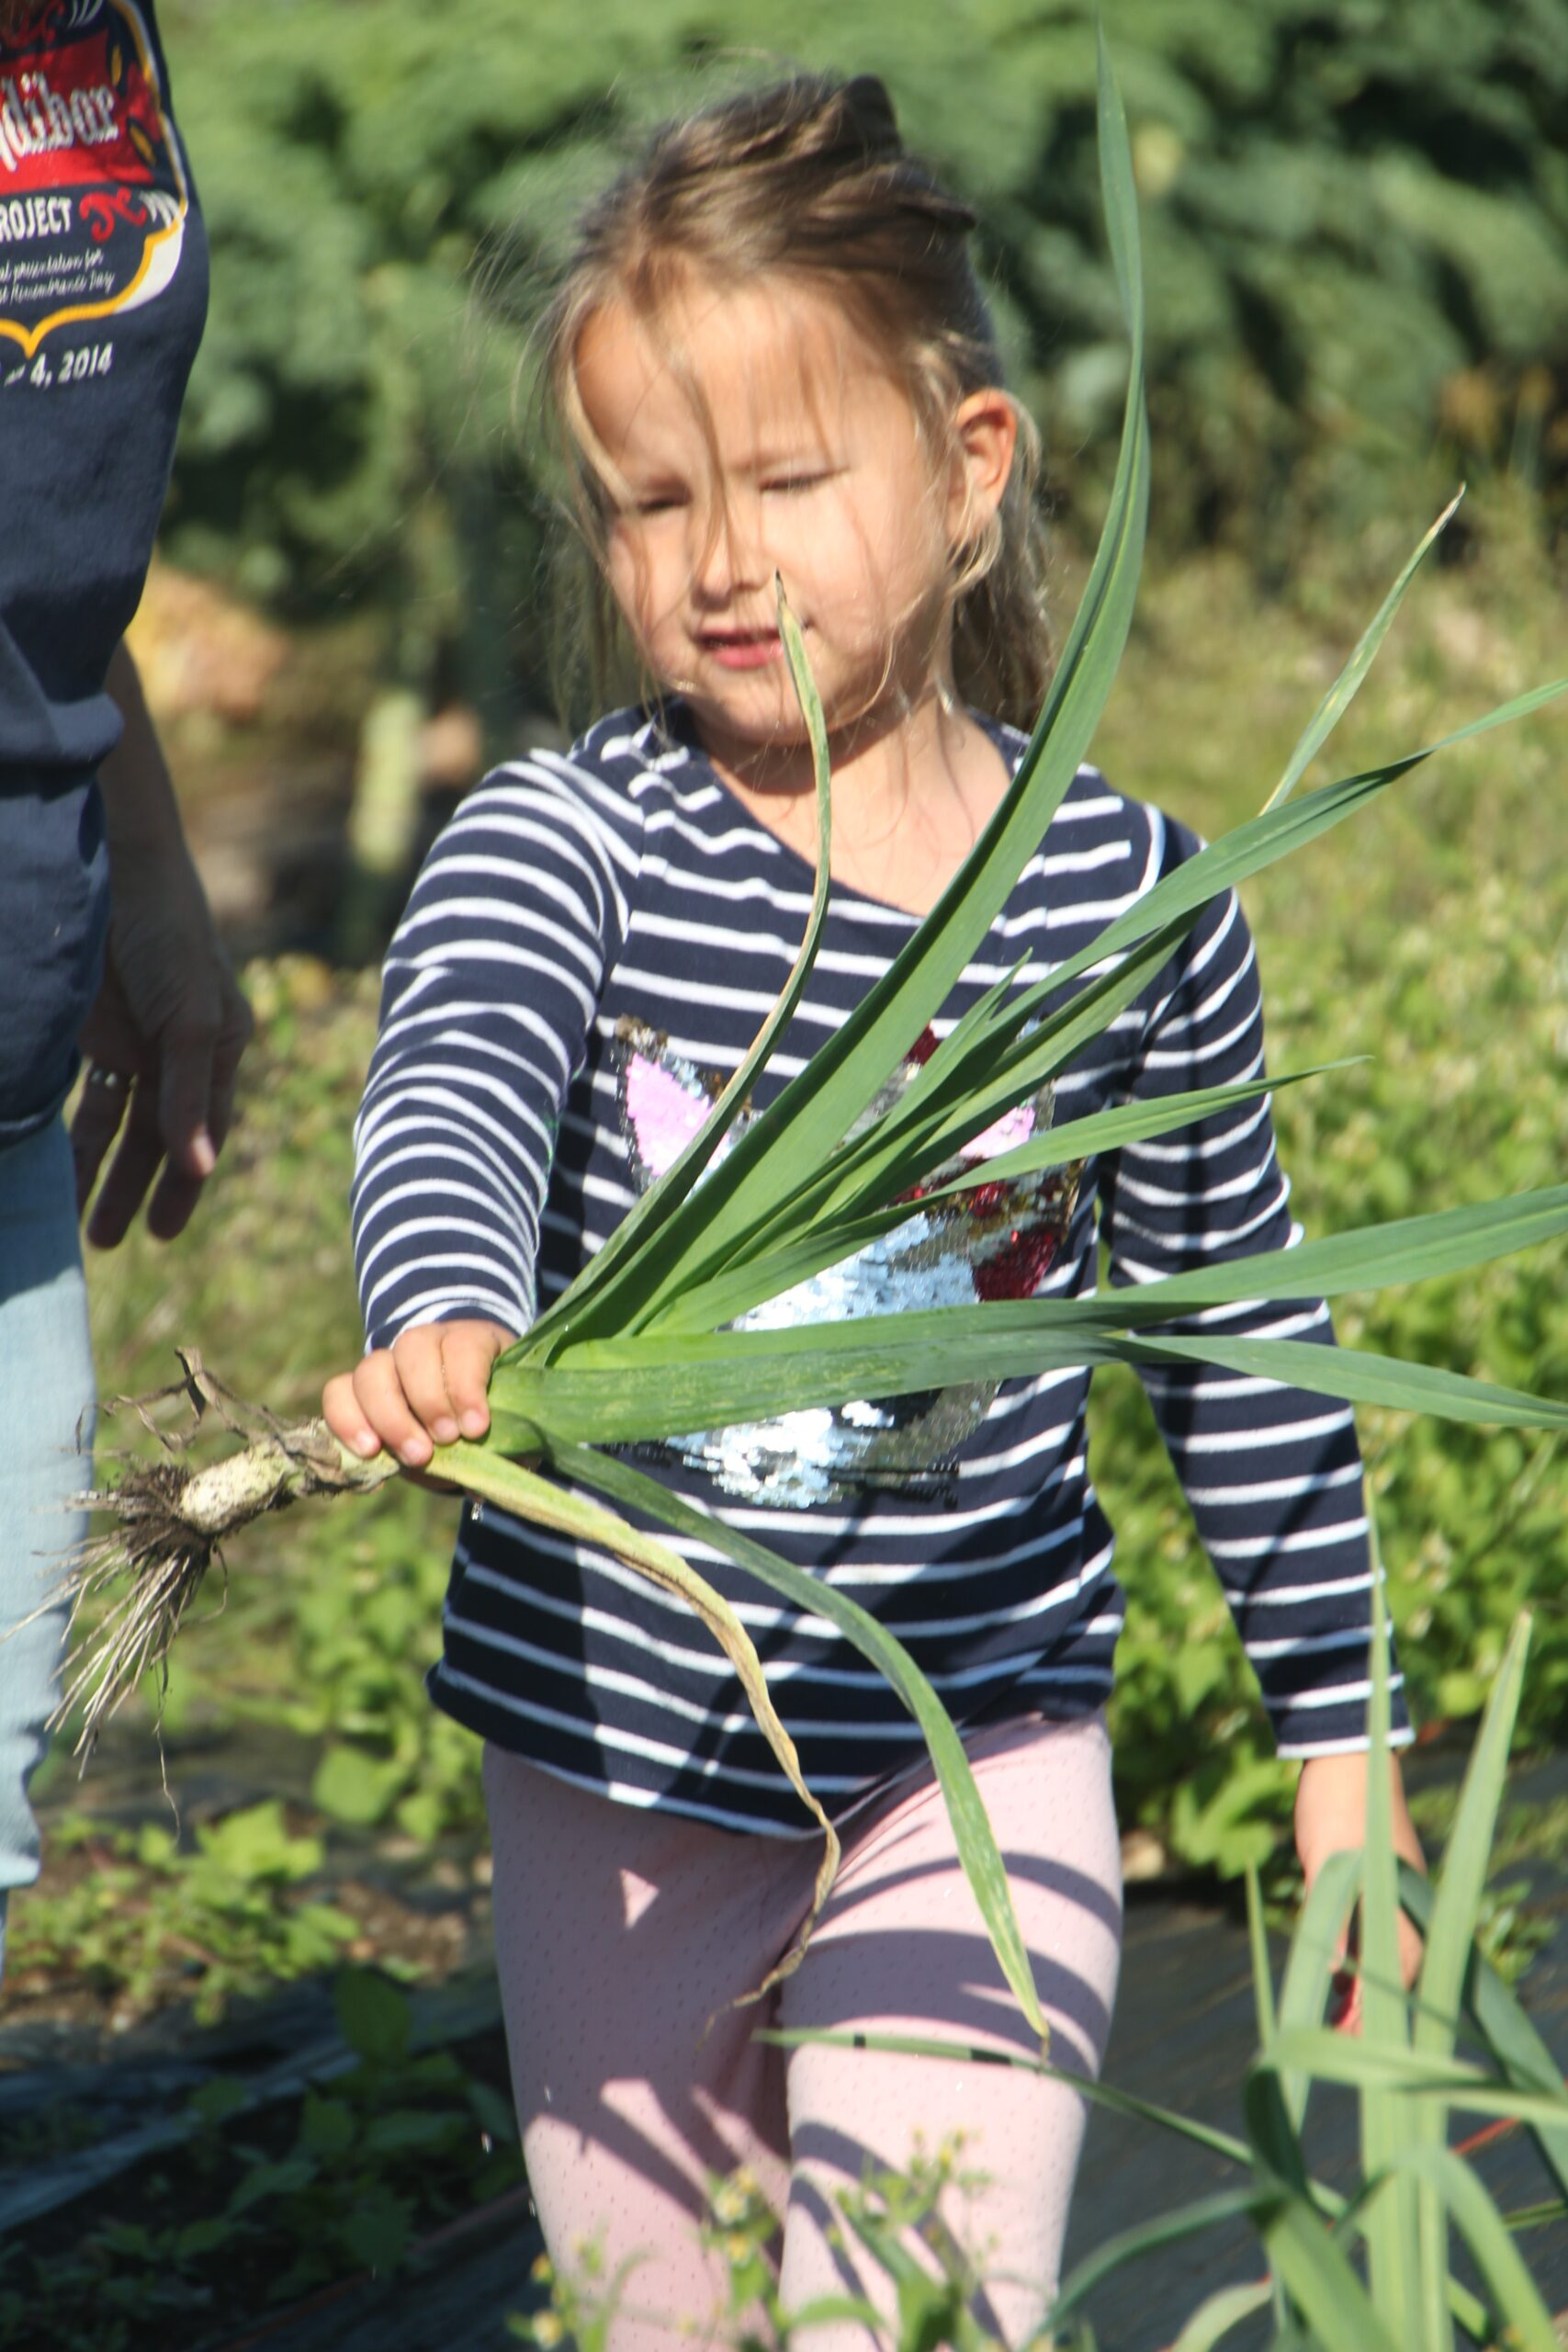 Gleaning in the Fields of Greens & Beans